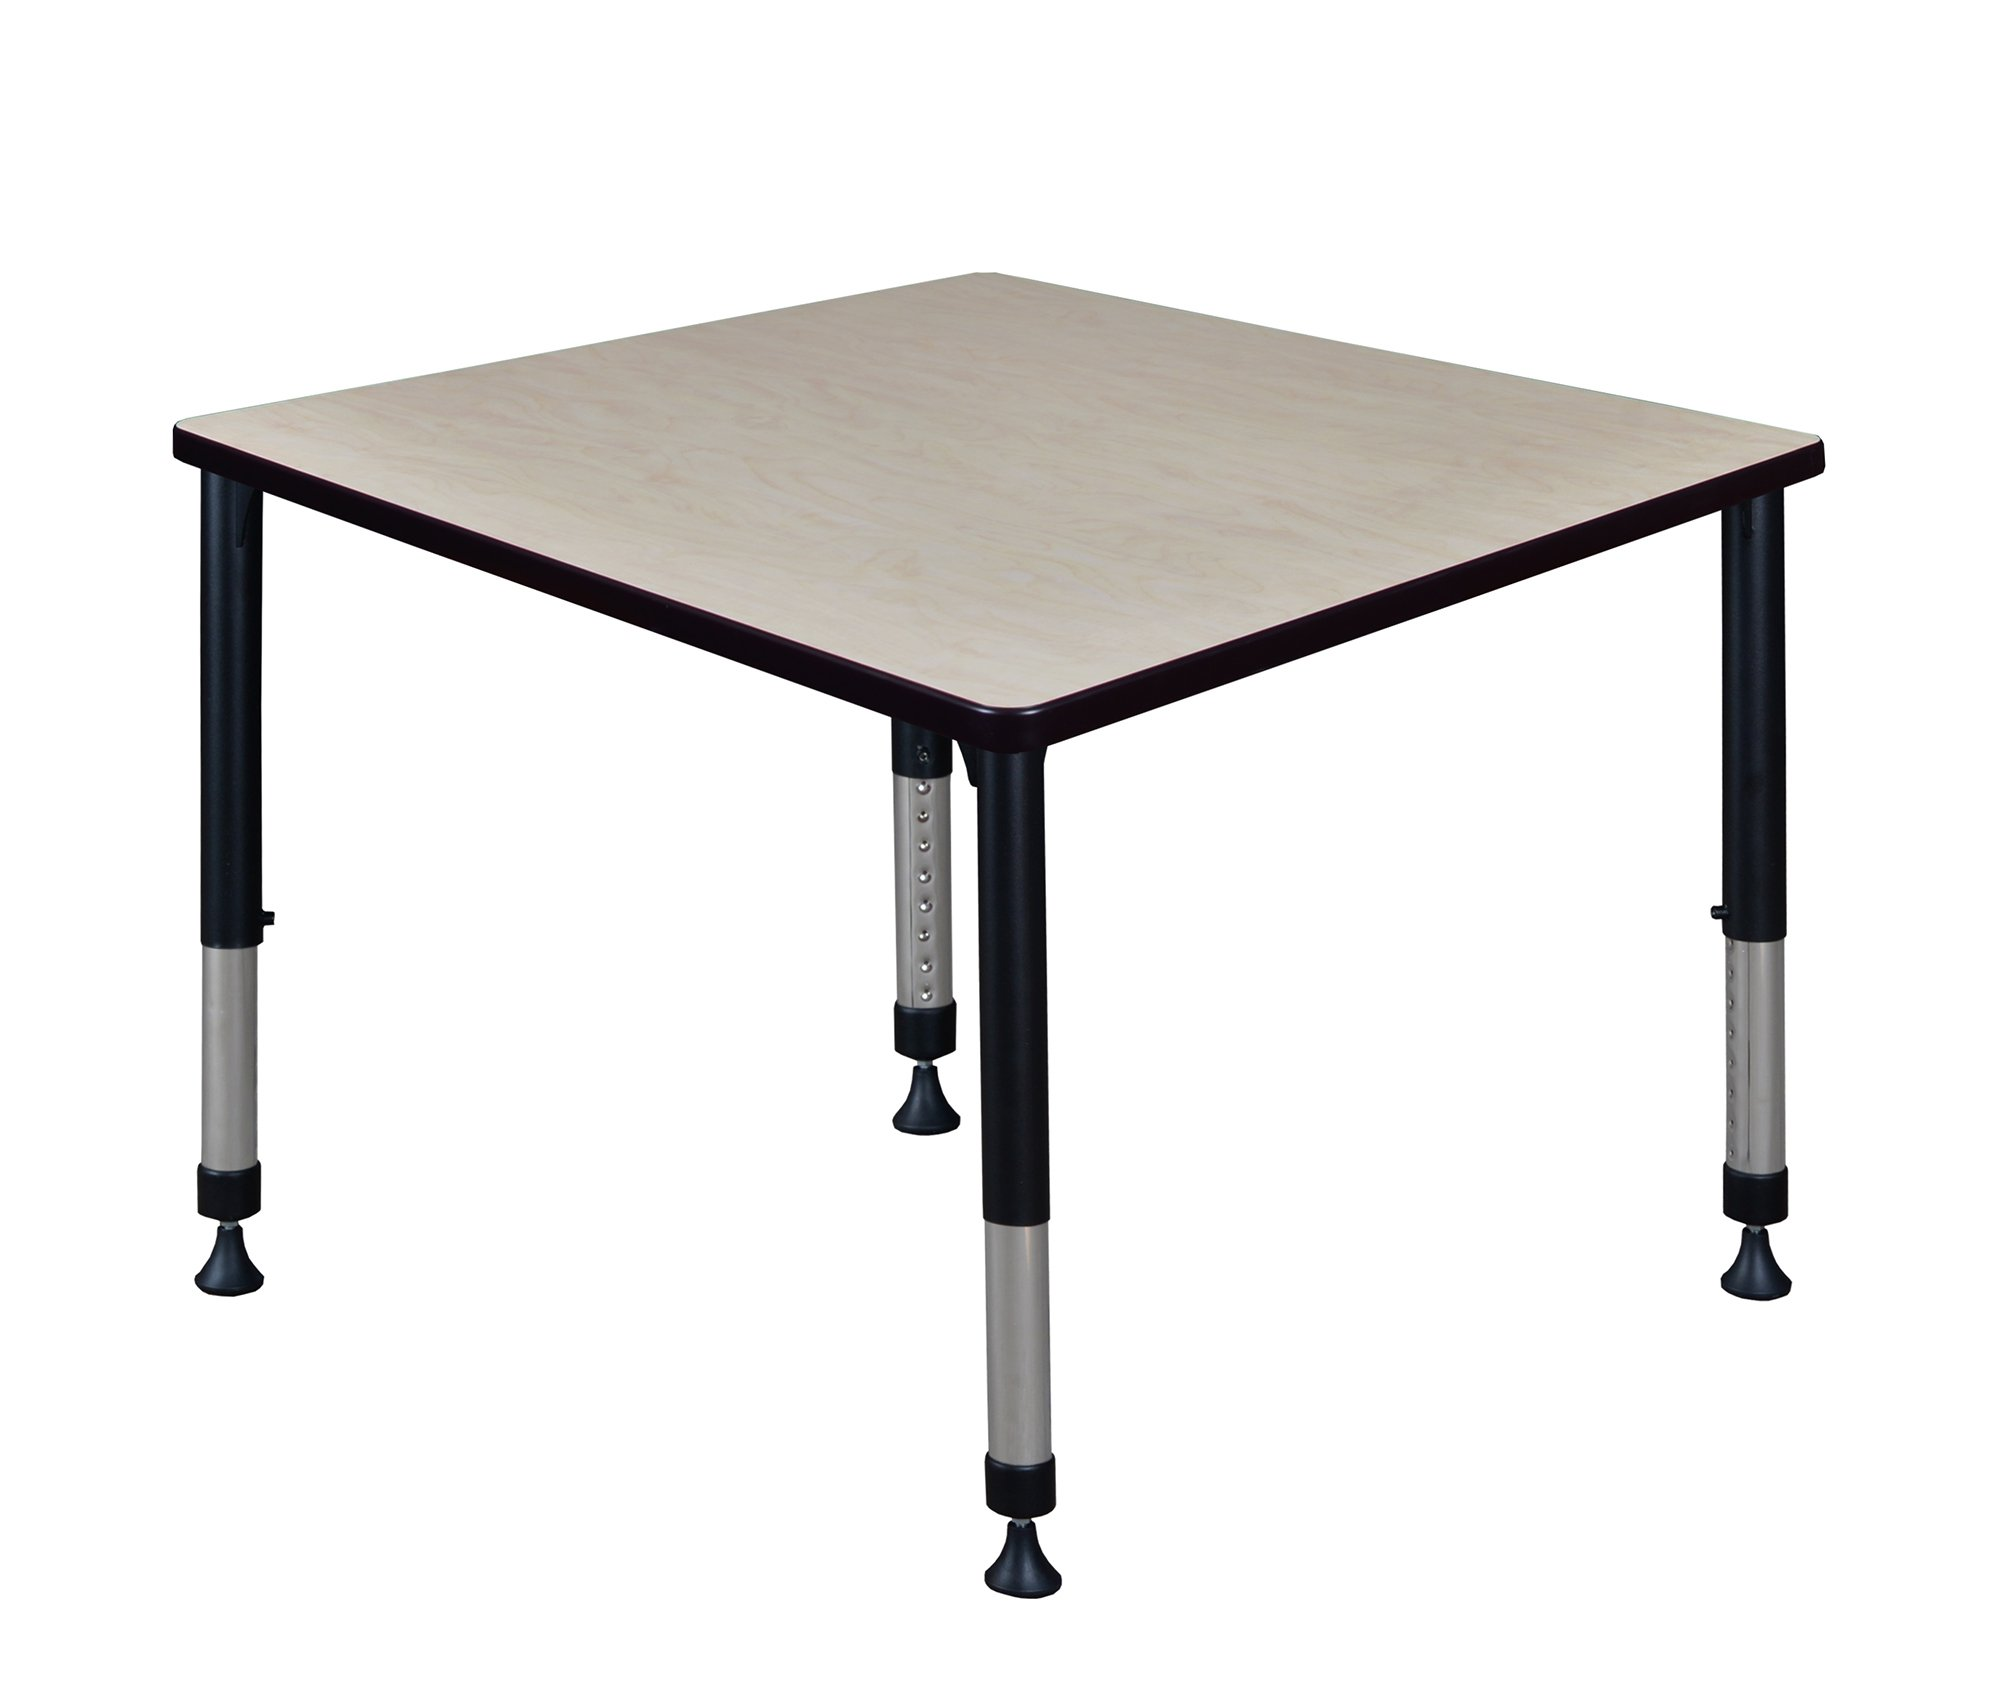 Kee 42'' Square Height Adjustable Classroom Table - Maple